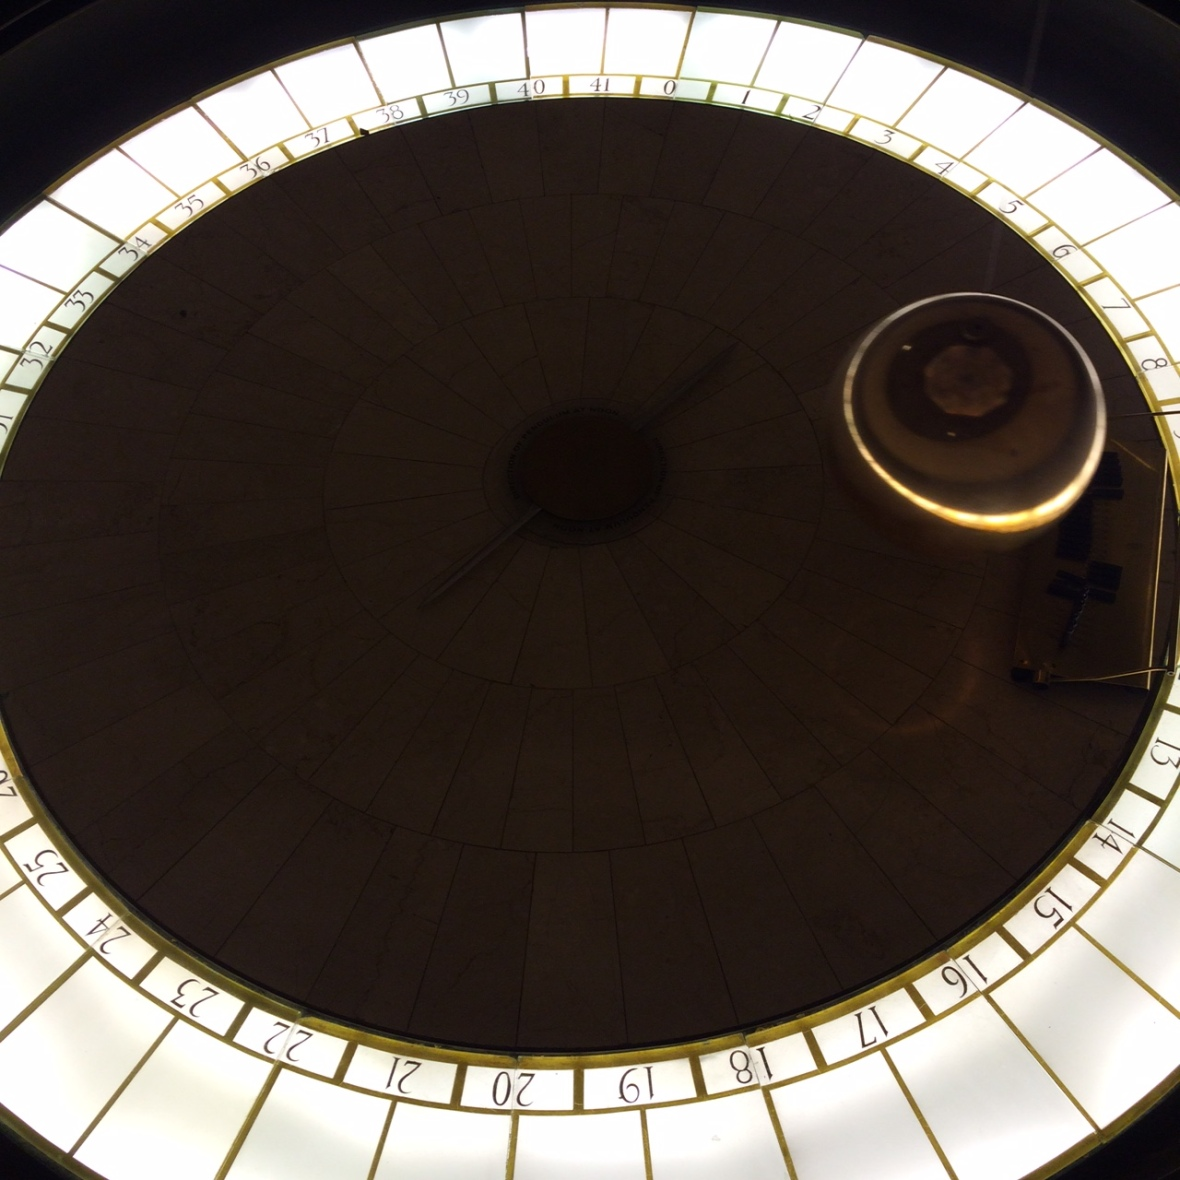 The Foucault Pendulum proves that the Earth rotates on its axis